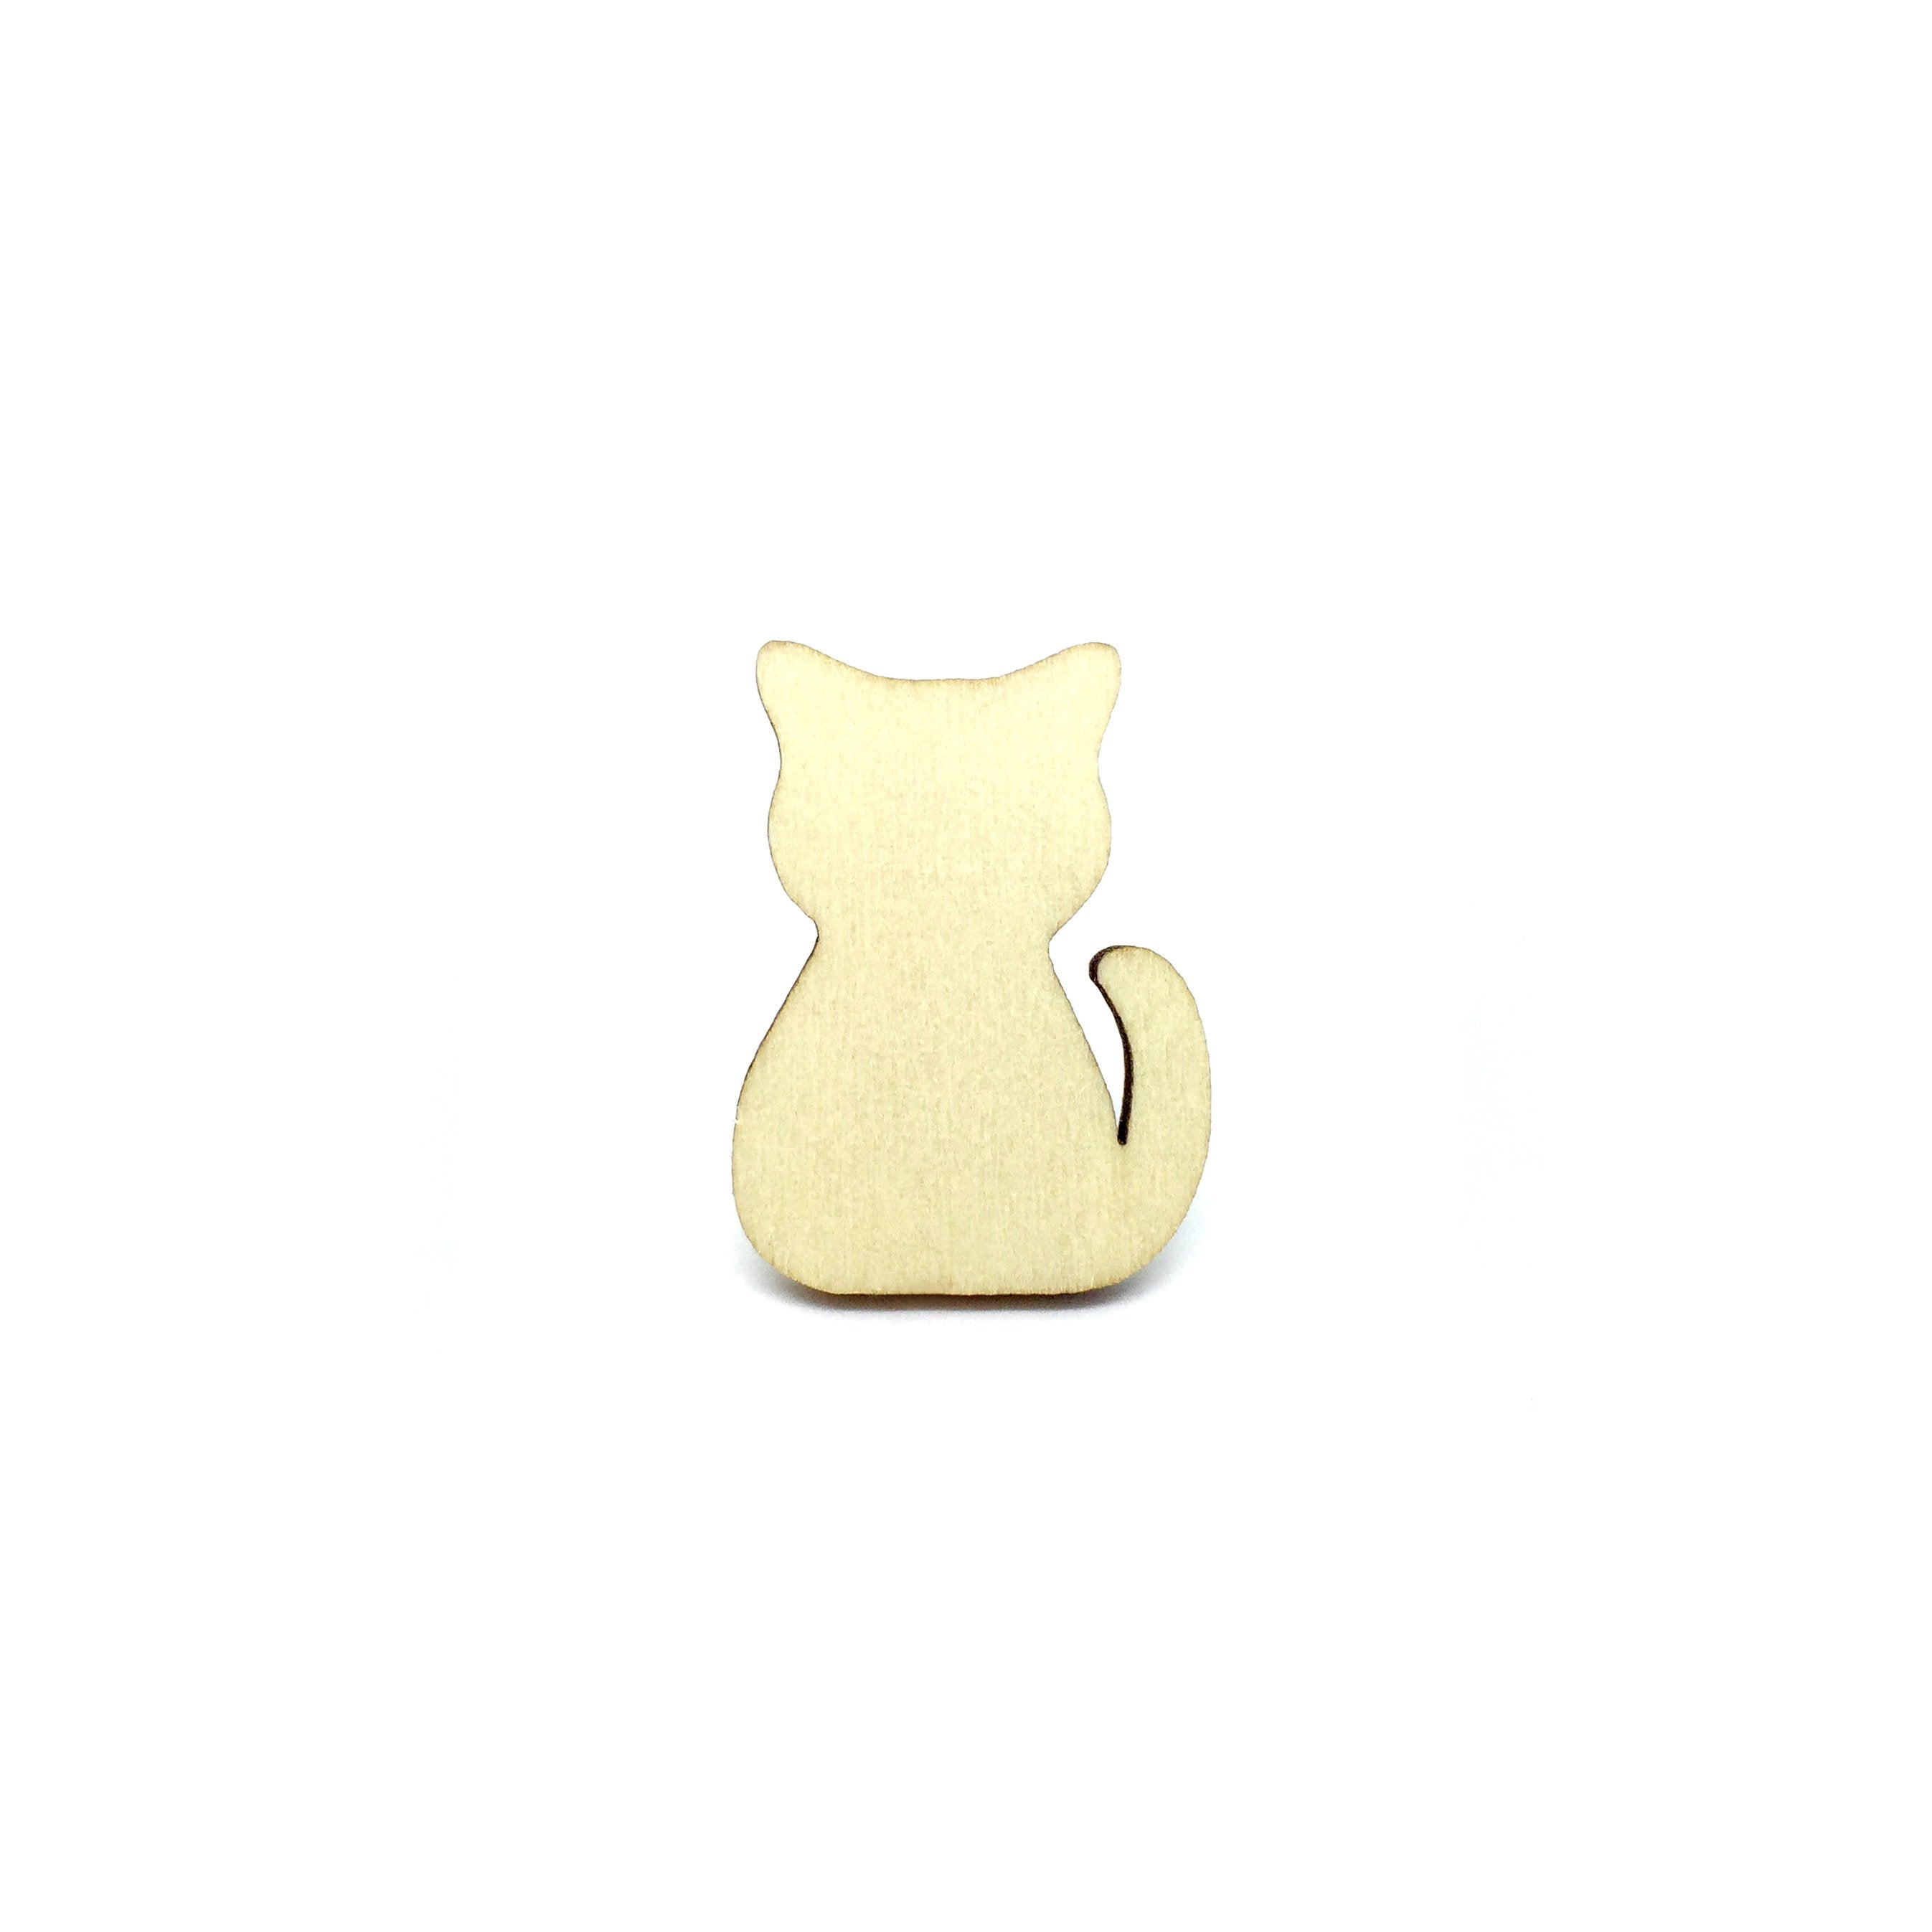 Adorable Cat Wooden Brooch Pin